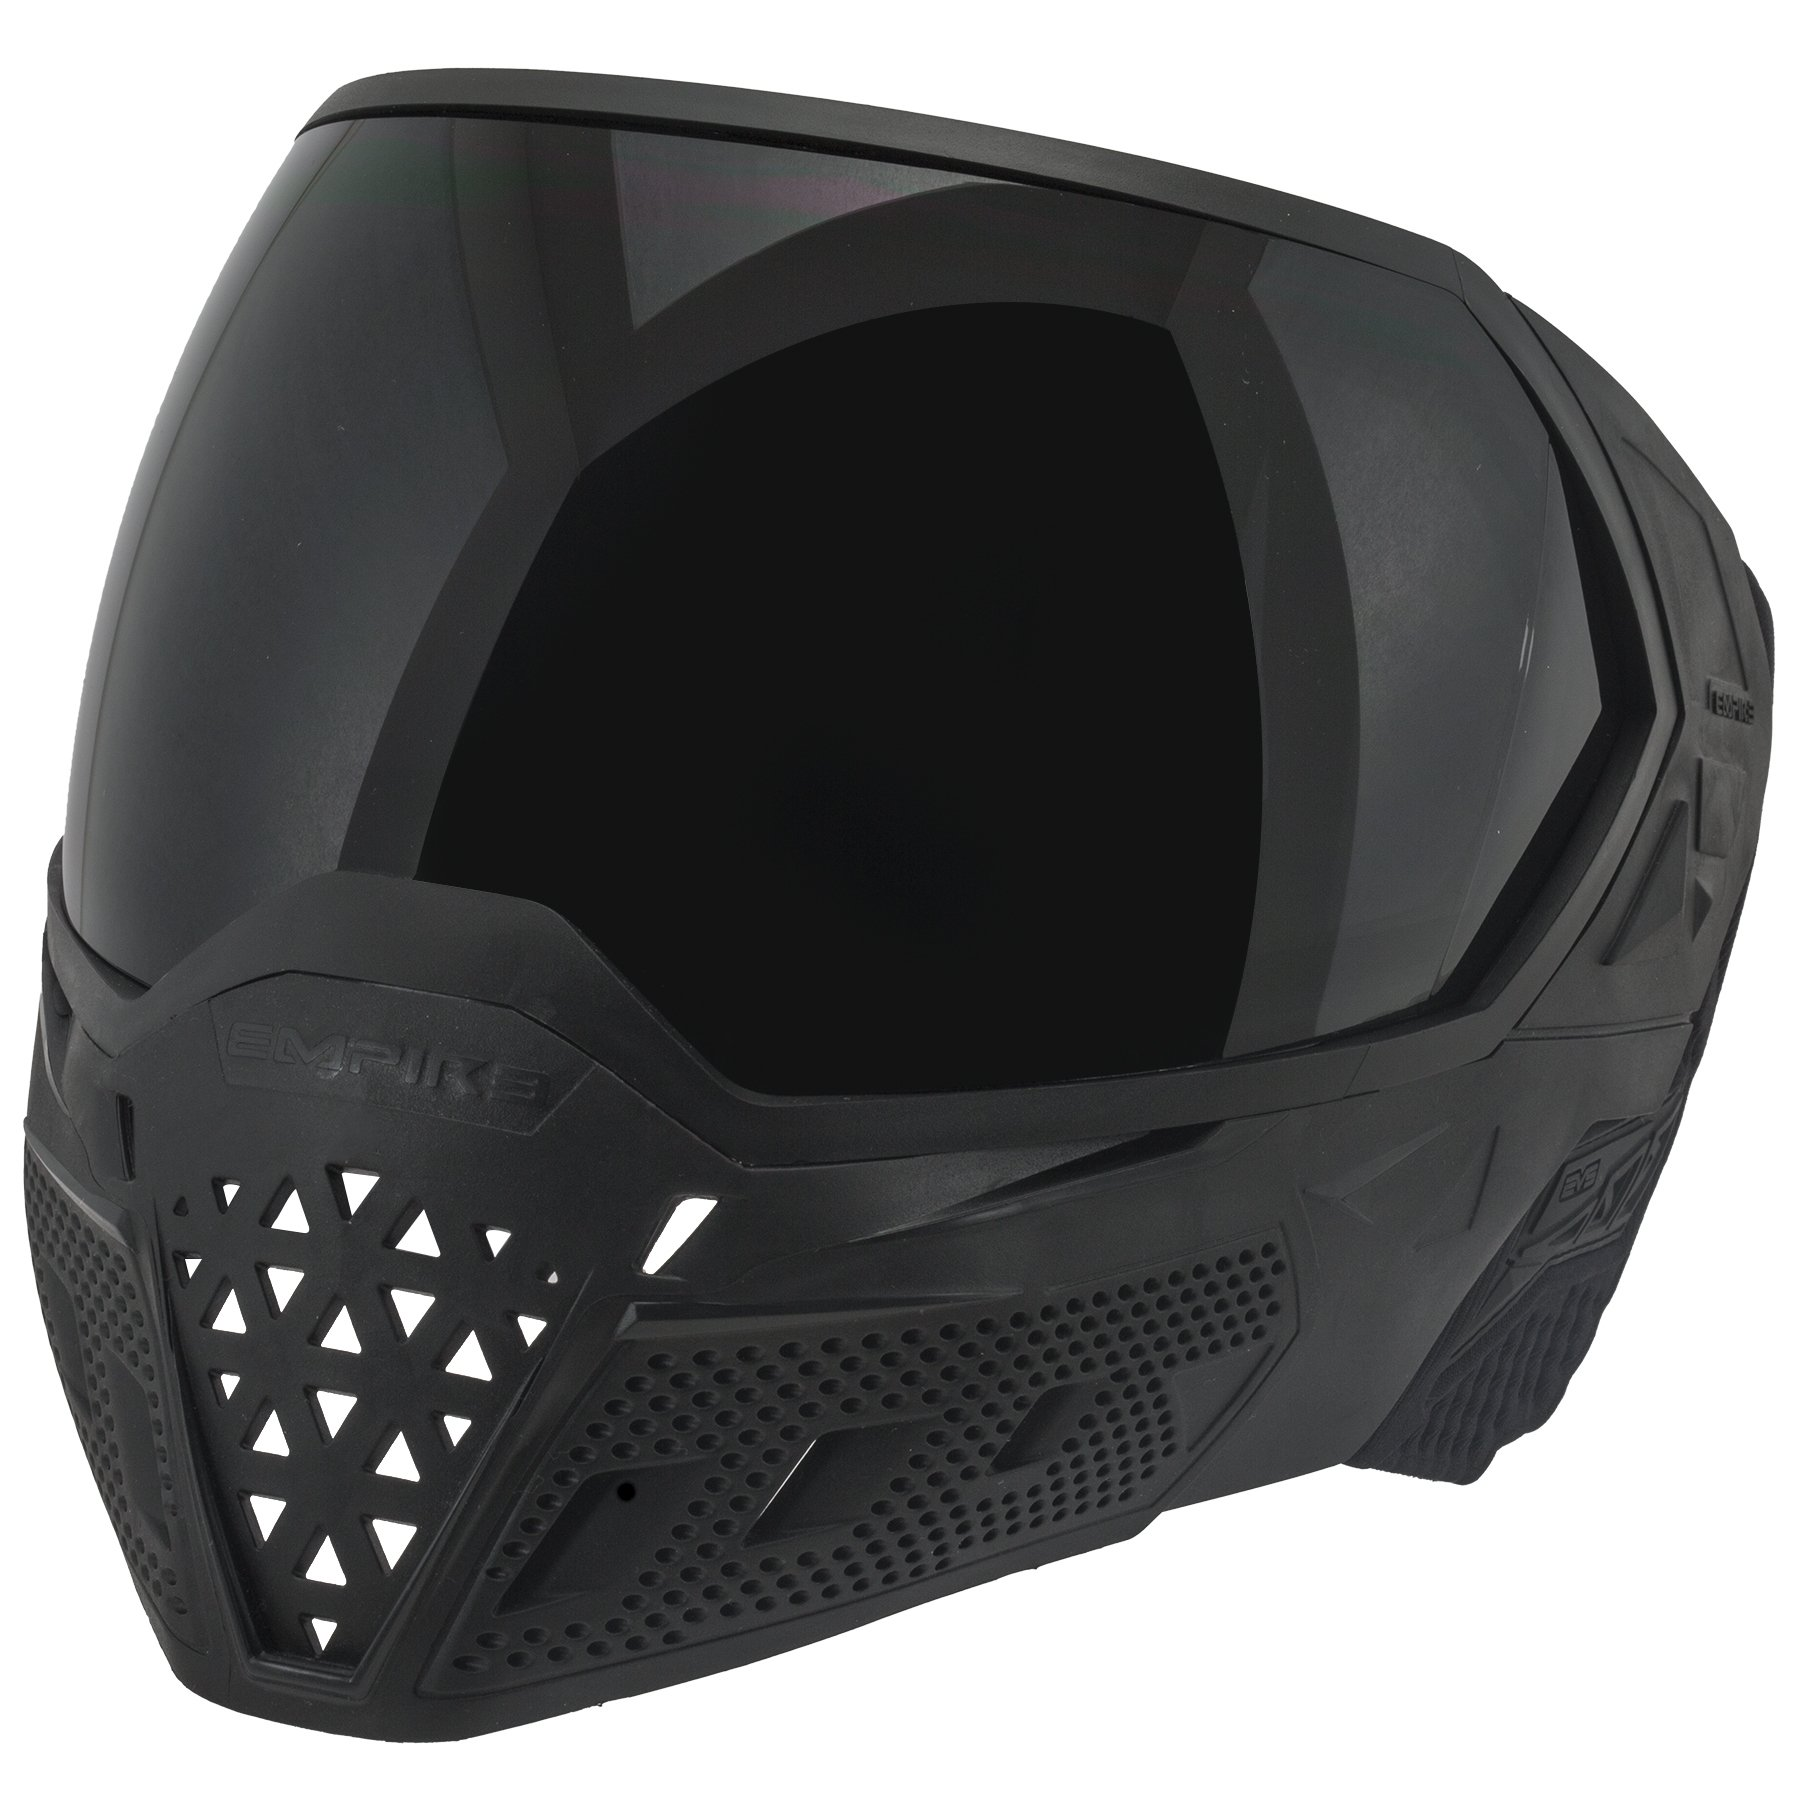 Empire EVS Thermal Paintball Goggles - Black by Empire